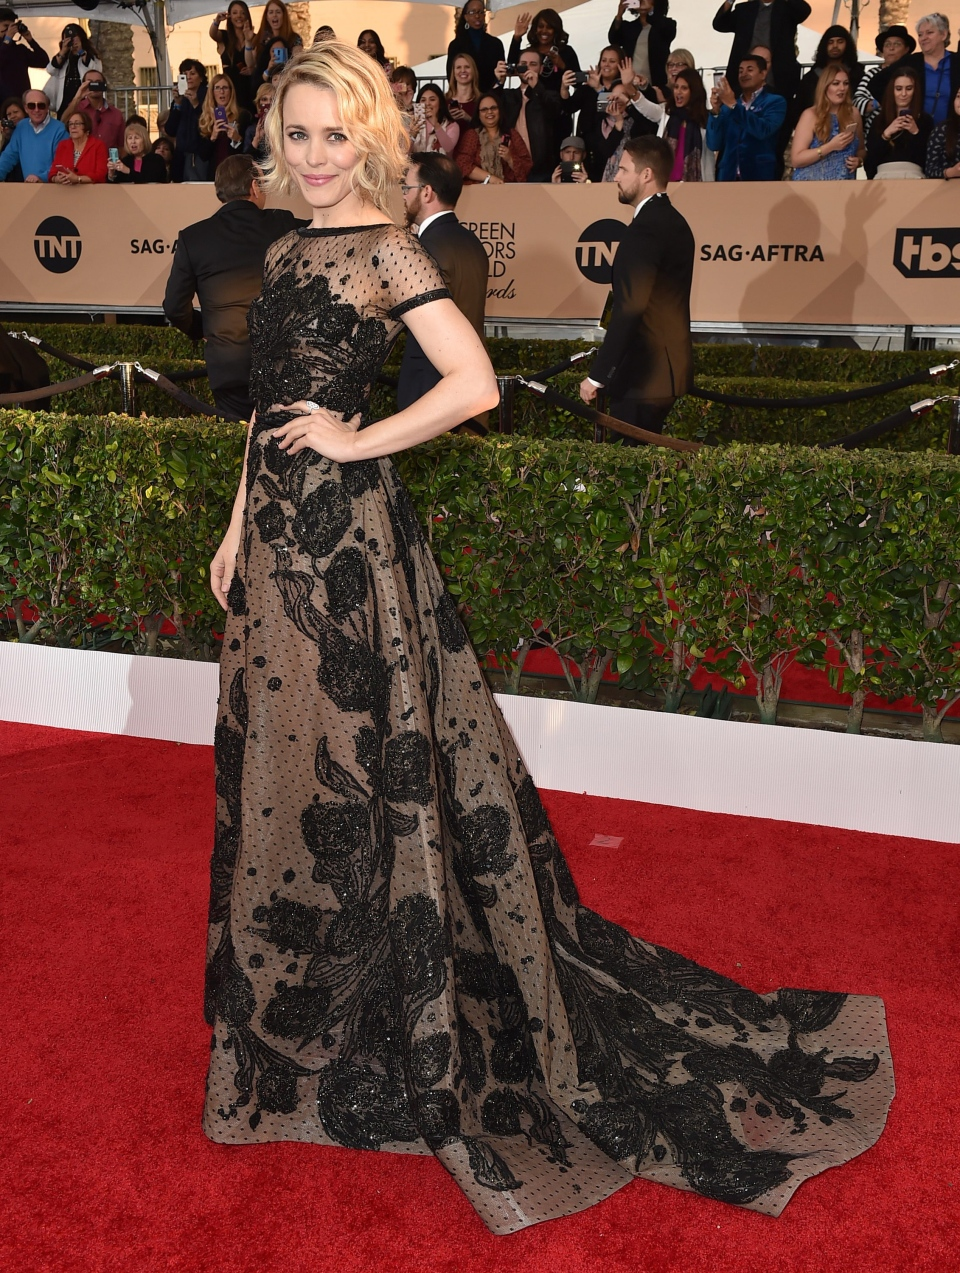 Rachel McAdams arrives at the 22nd annual Screen Actors Guild Awards at the Shrine Auditorium & Expo Hall on Saturday, Jan. 30, 2016, in Los Angeles. (Photo by Jordan Strauss / Invision / AP)